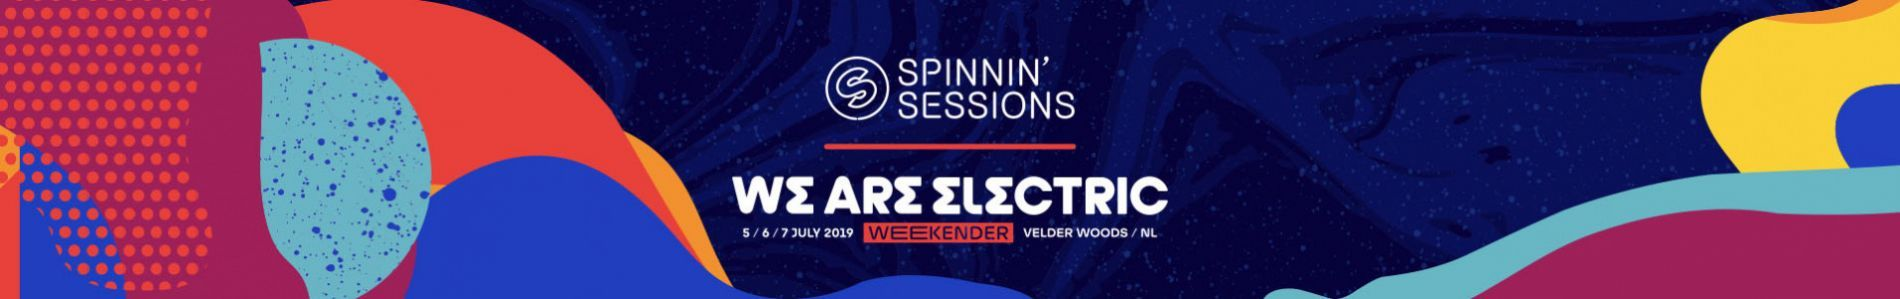 Spinnin' Sessions Spinnin' Sessions at We Are Electric | The Netherlands